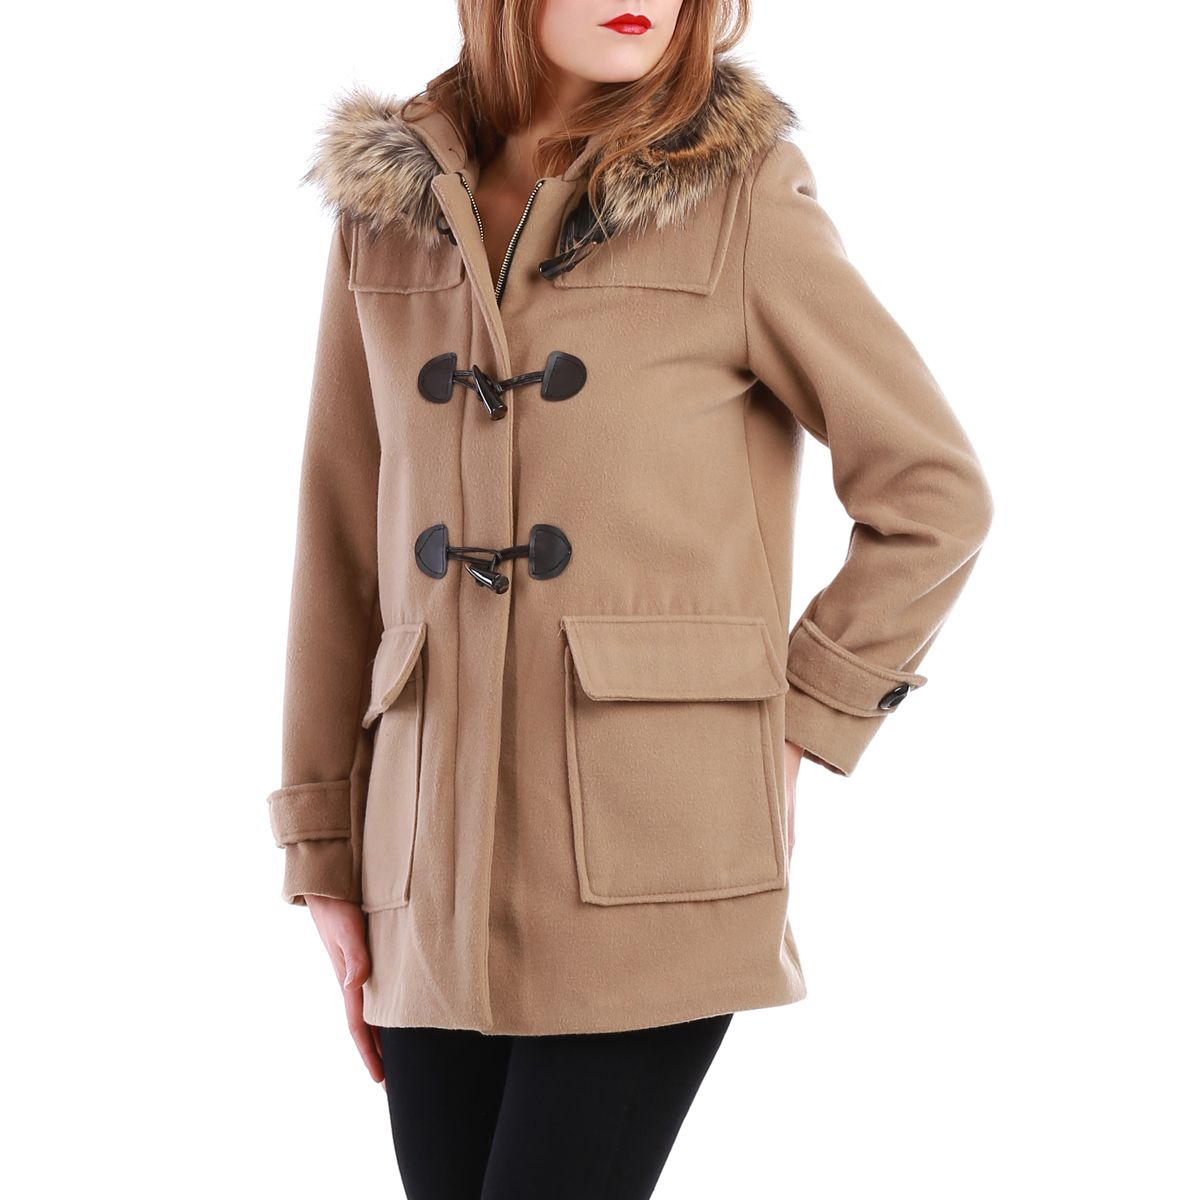 manteau beige style duffle coat avec capuche fourrure pas. Black Bedroom Furniture Sets. Home Design Ideas